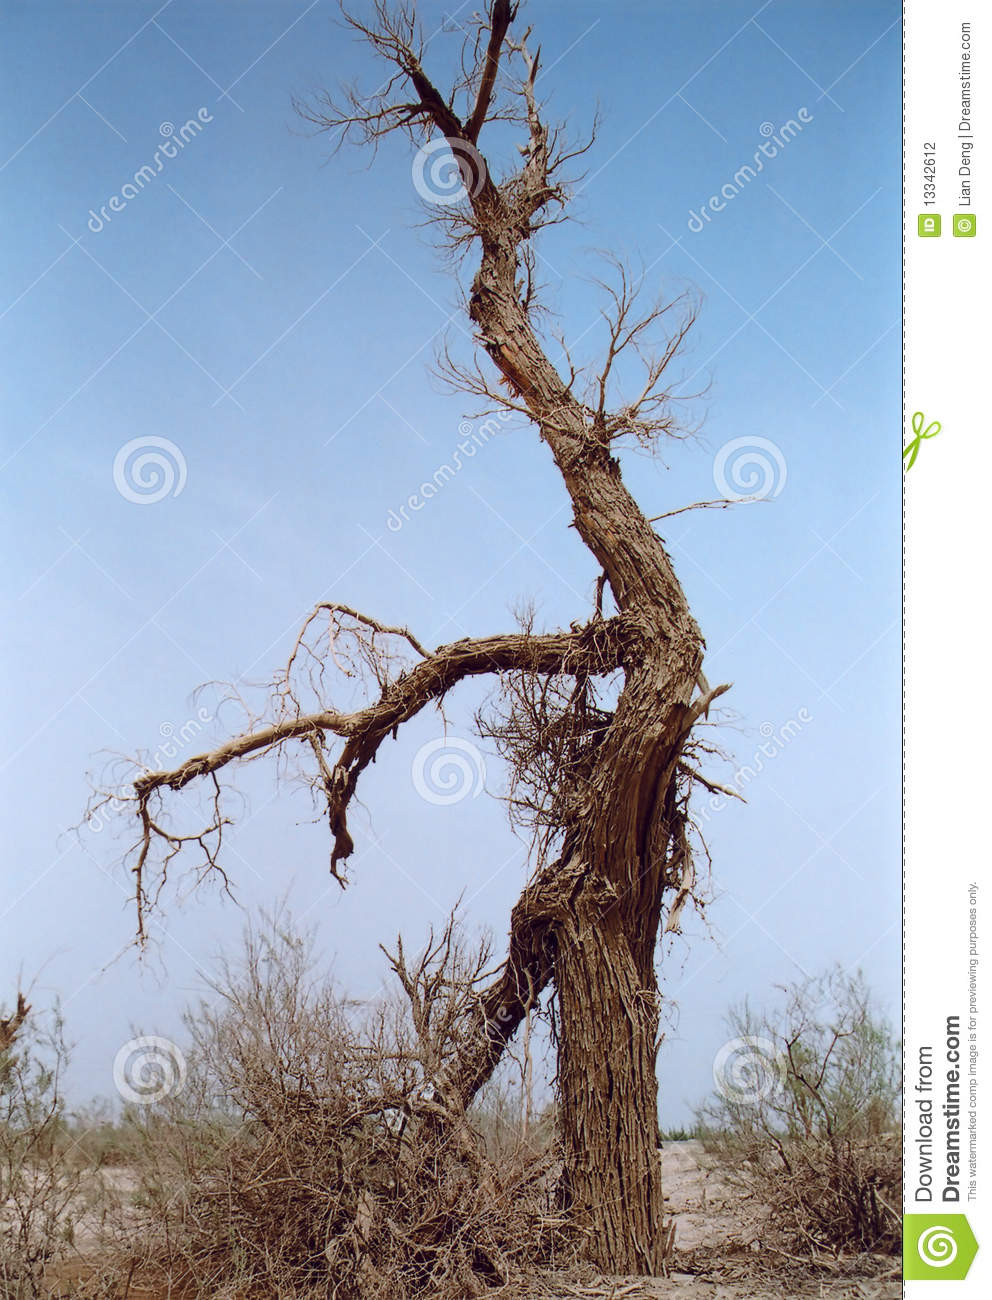 Withered Tree Stock Photography - Image: 13342612